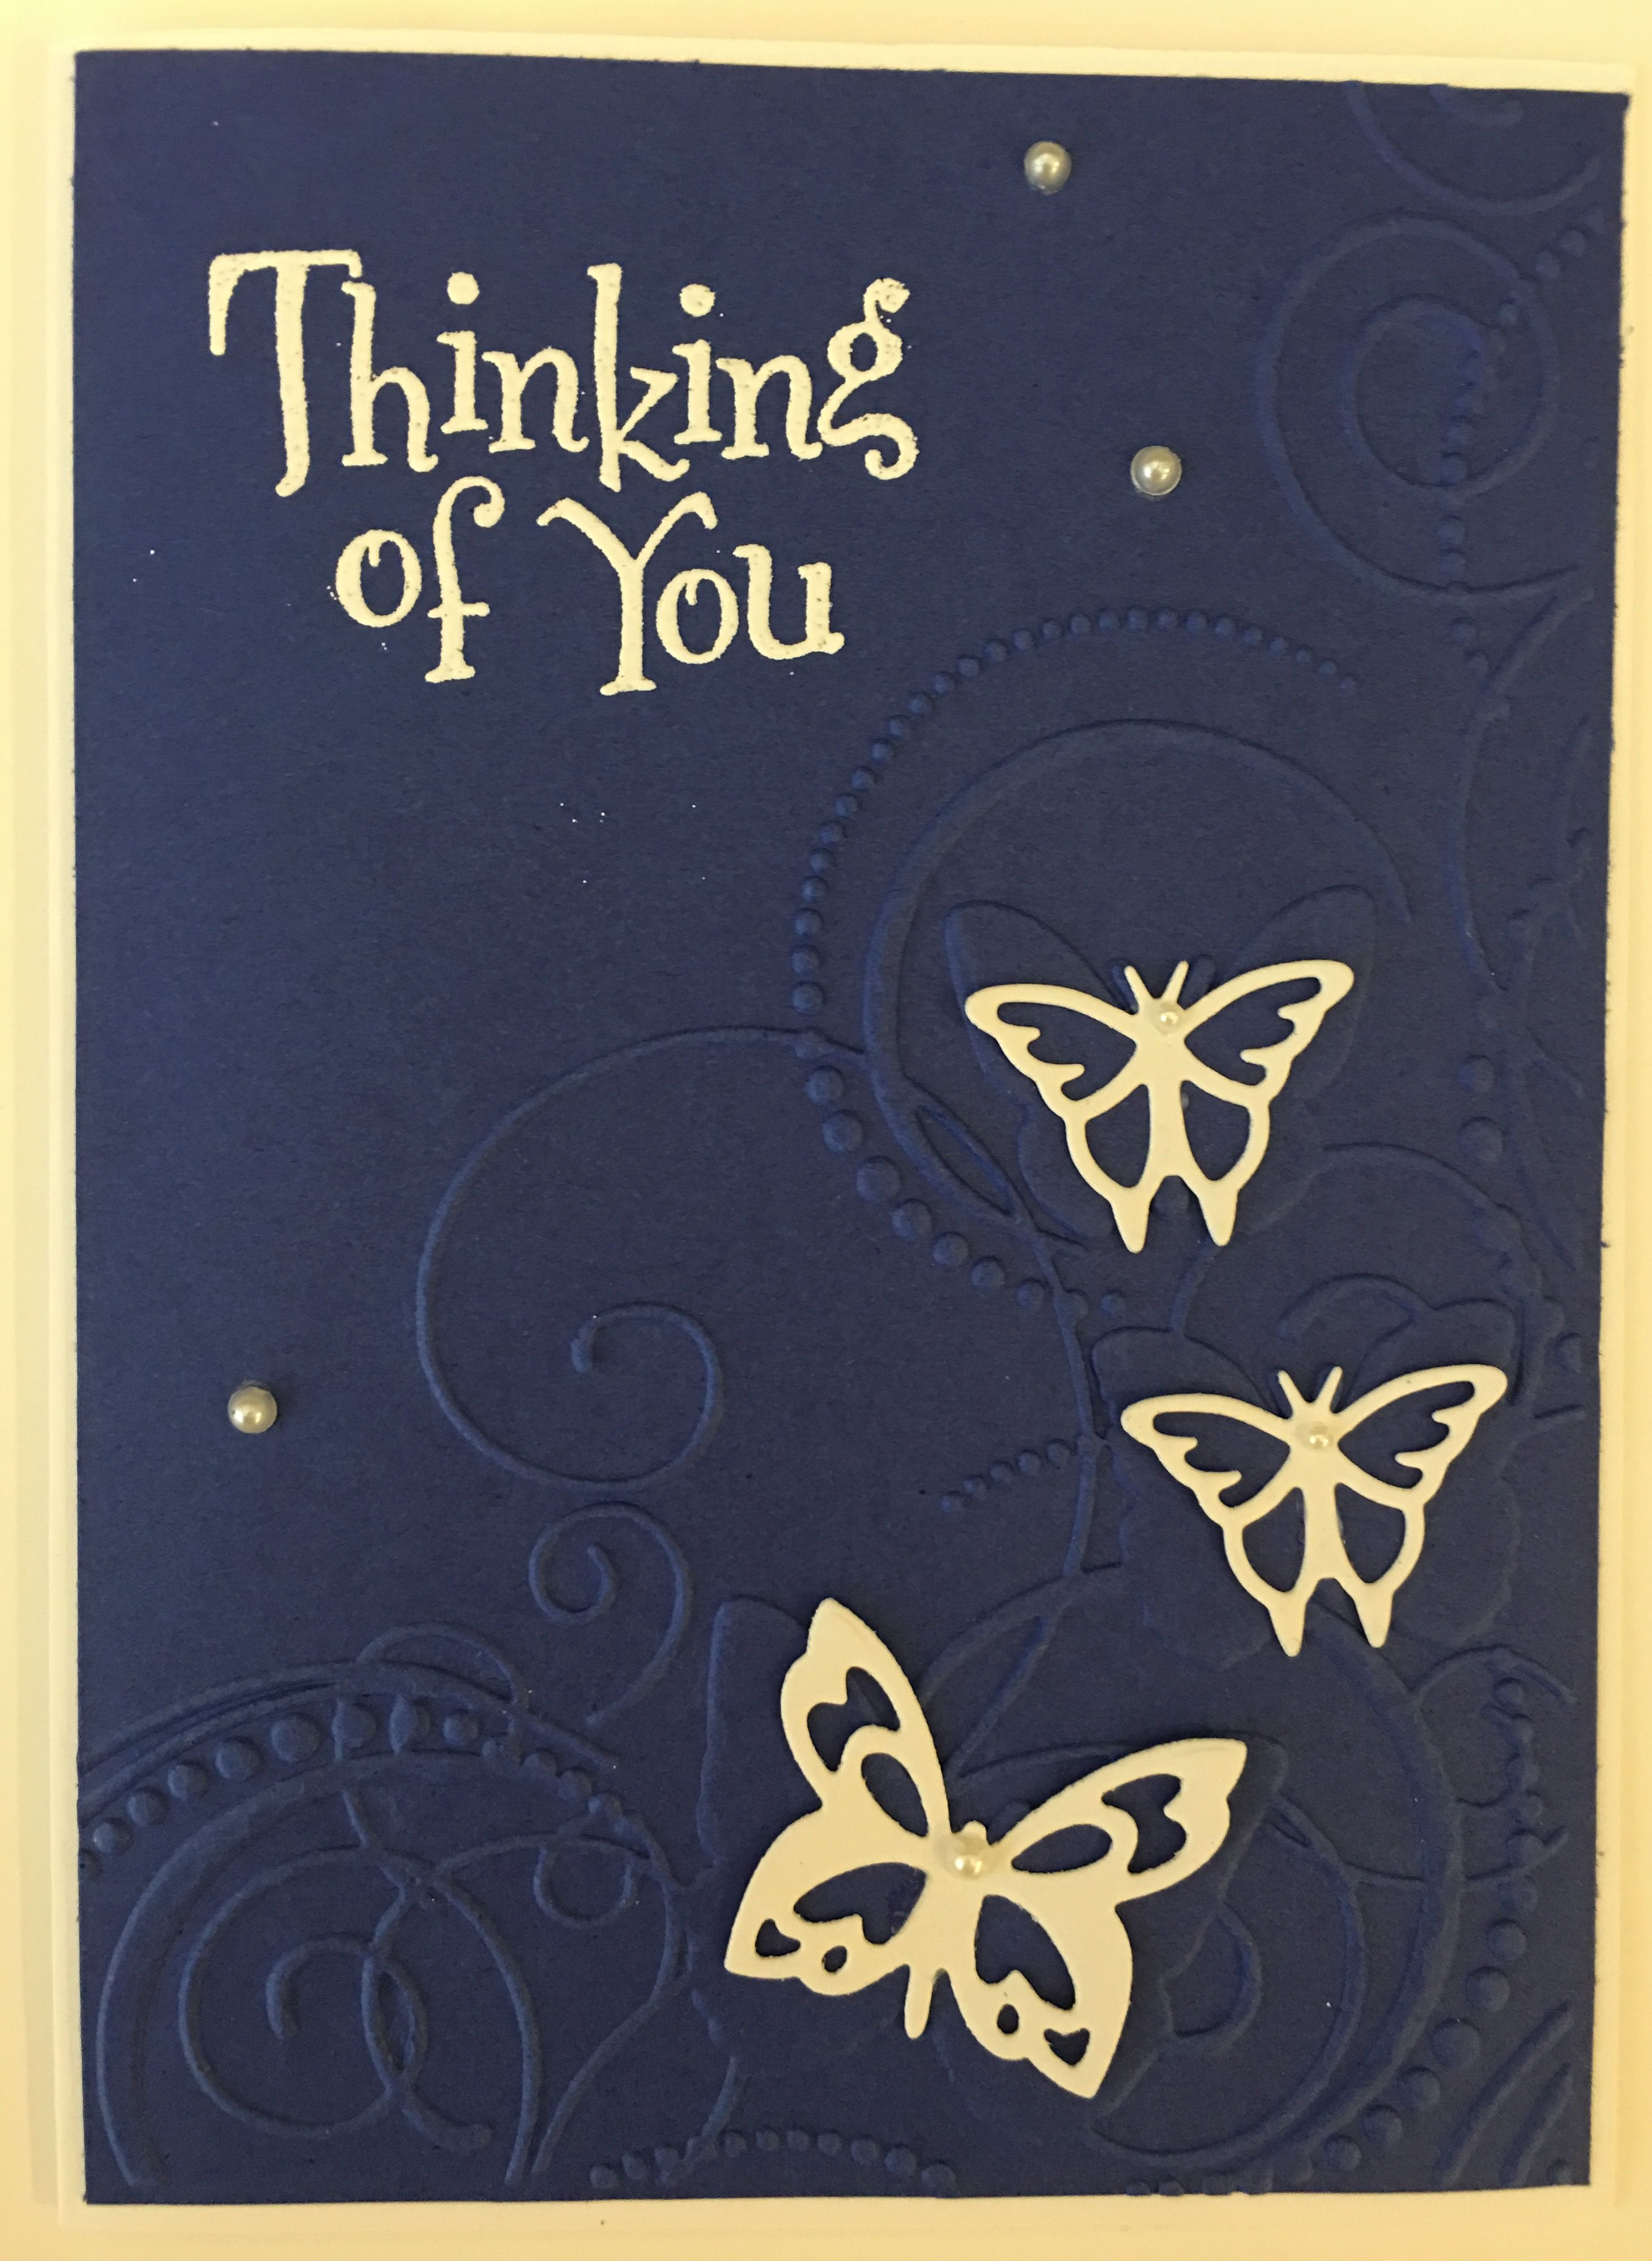 Cby Handmade Navy Blue Thinking Of You Greeting Card With Embossed